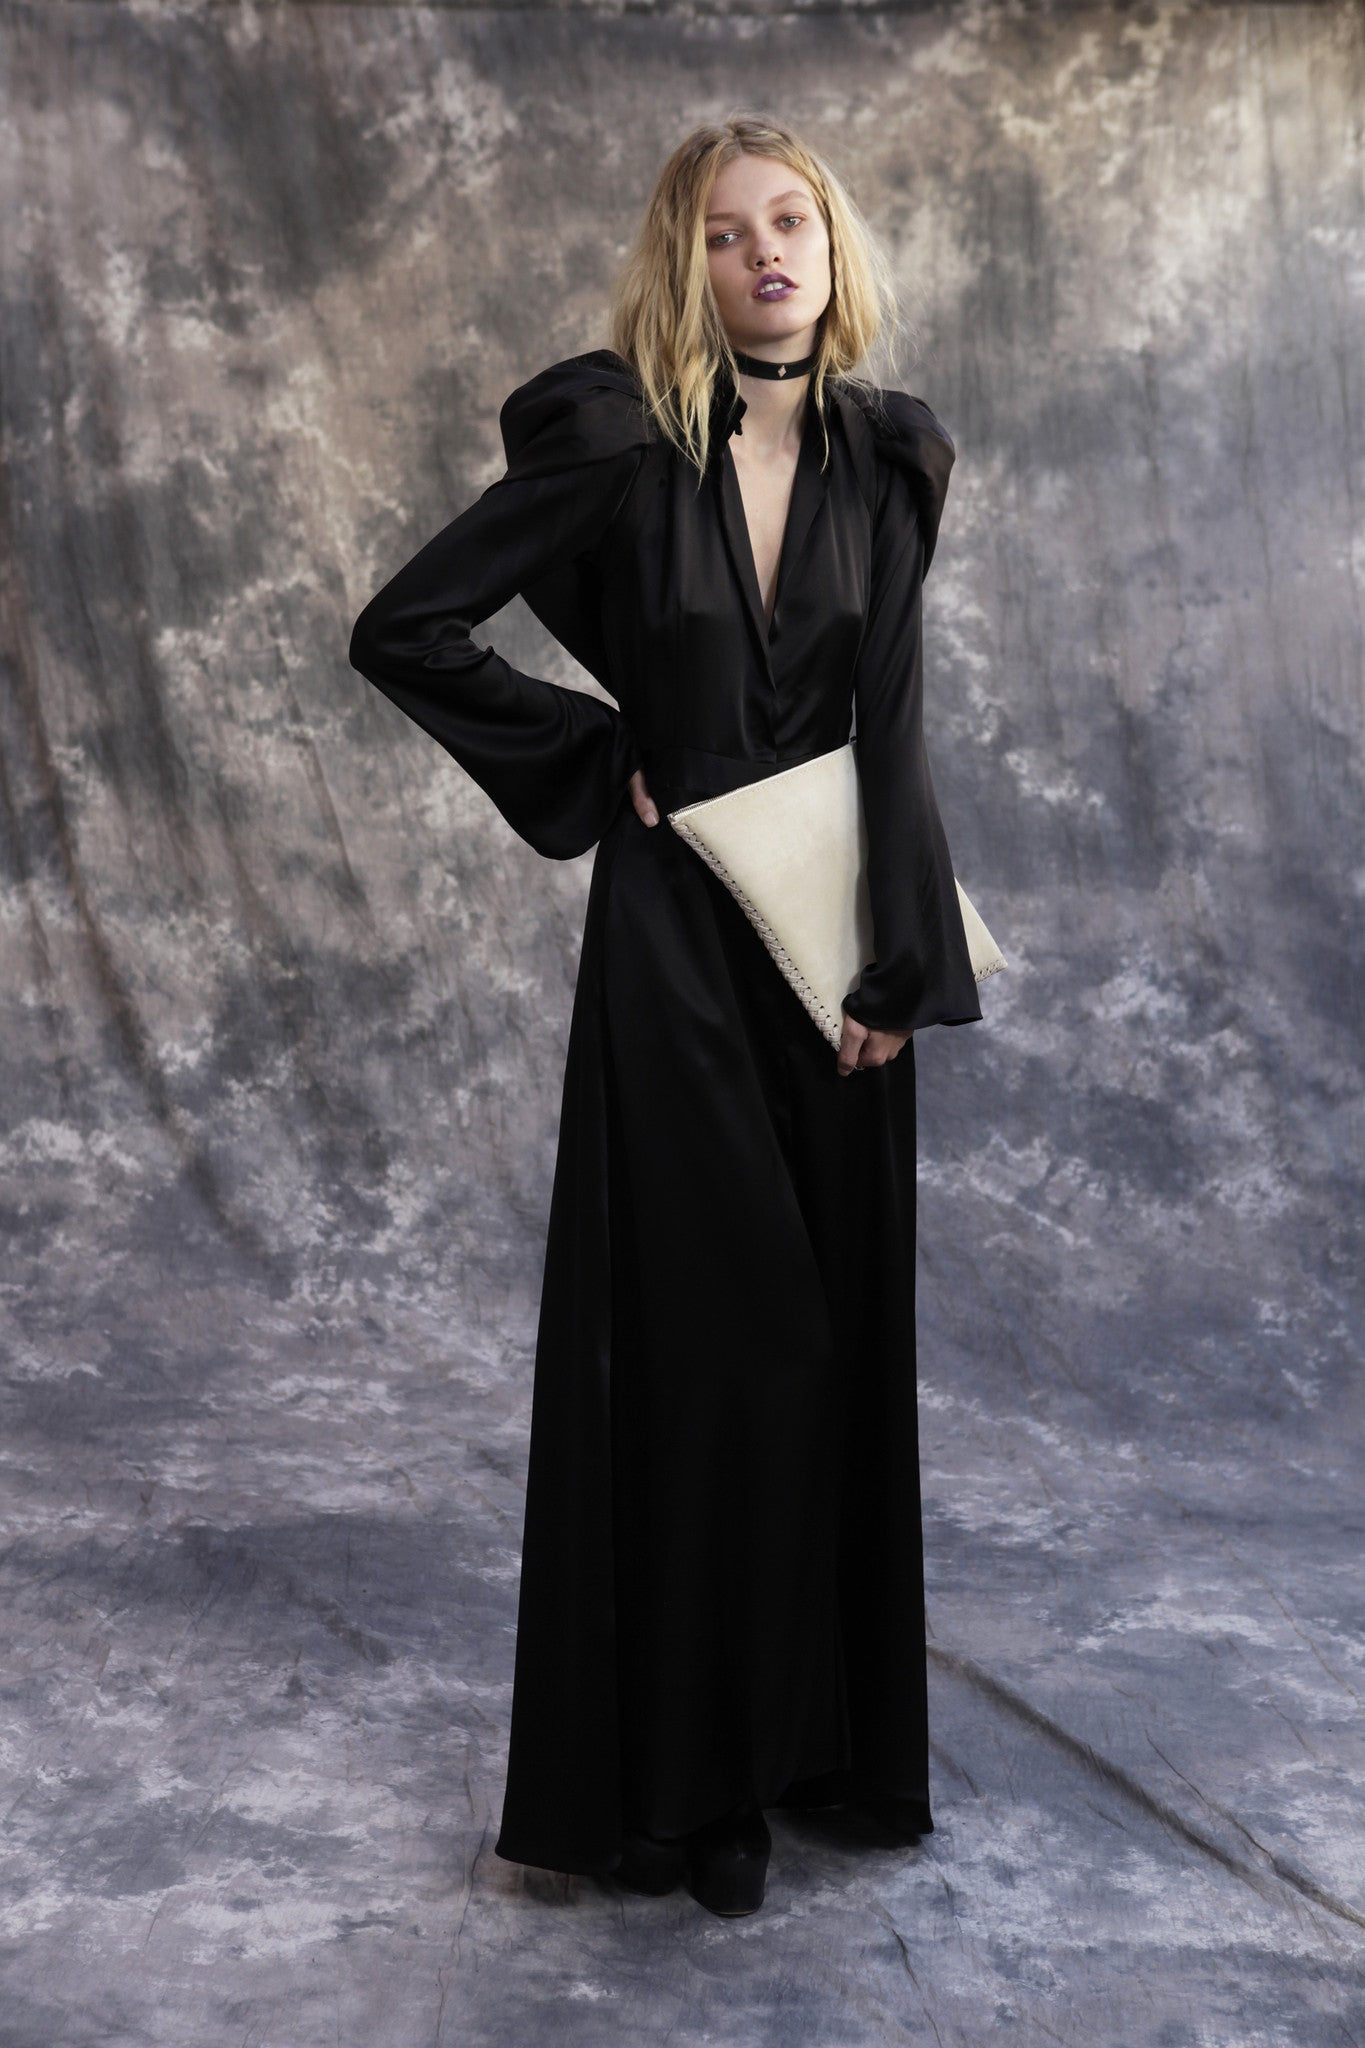 Maggie Laine IMG model Wendy Nichol SS17 Clothing Designer Fashion Runway Show Death Valley Triangle Diamond shape Clutch leather bag choker Vampire Goth Black Sheer Silk Long Bell Sleeve Train Dress with Detachable Hood Puffy Wizard